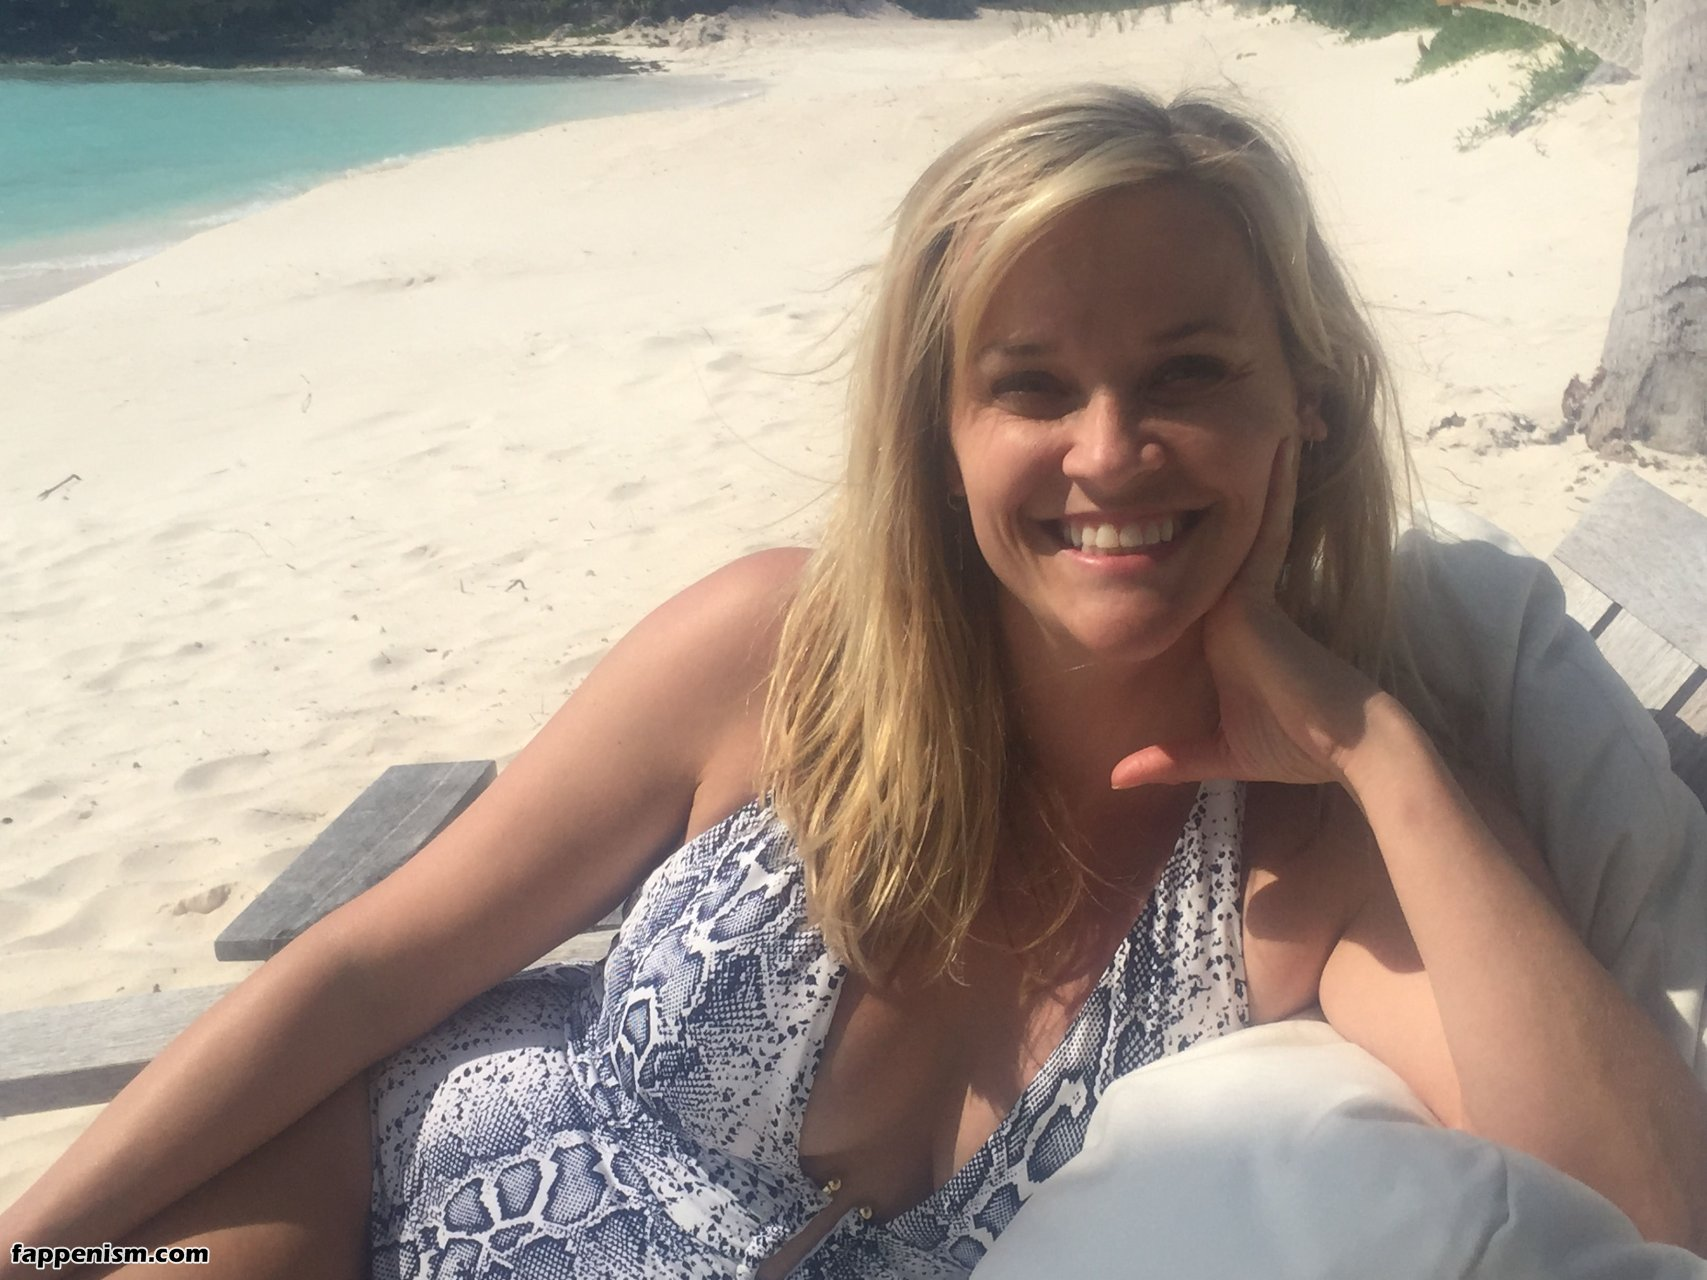 Reese Witherspoon Oben Ohne foto 2